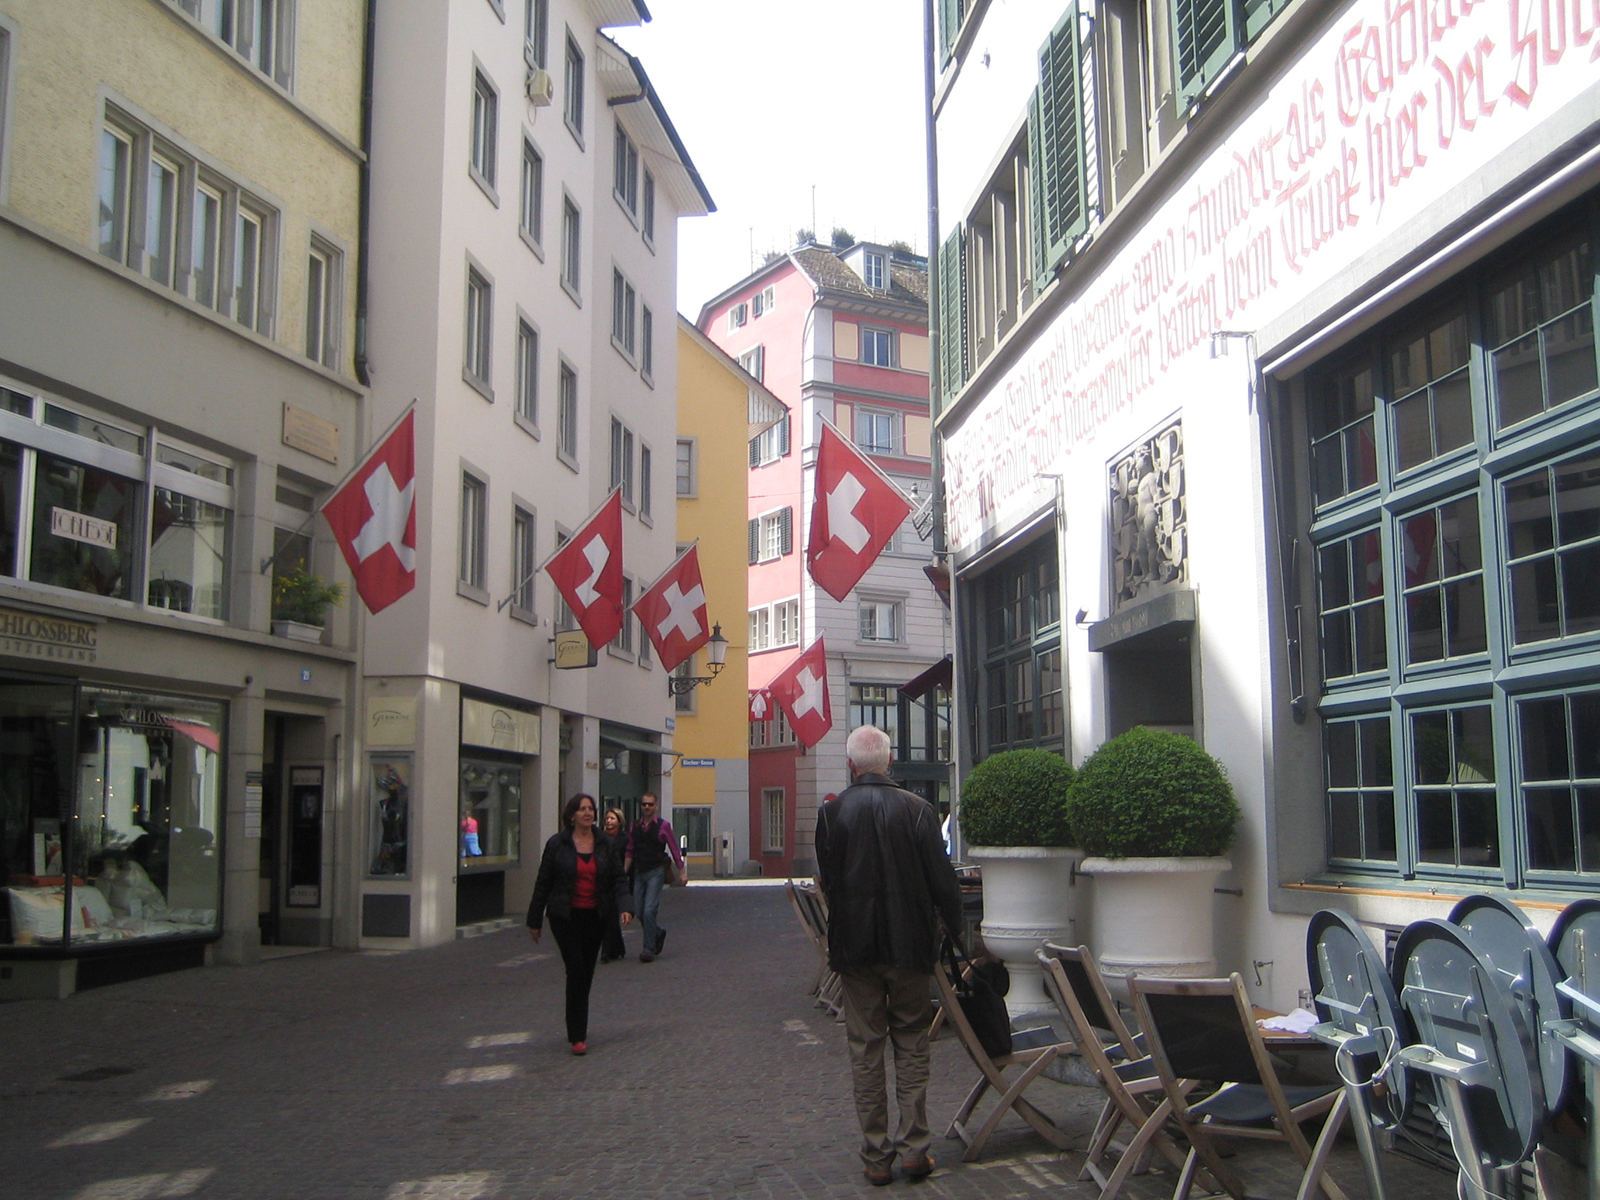 One of the winding streets in Zurich's medieval center.